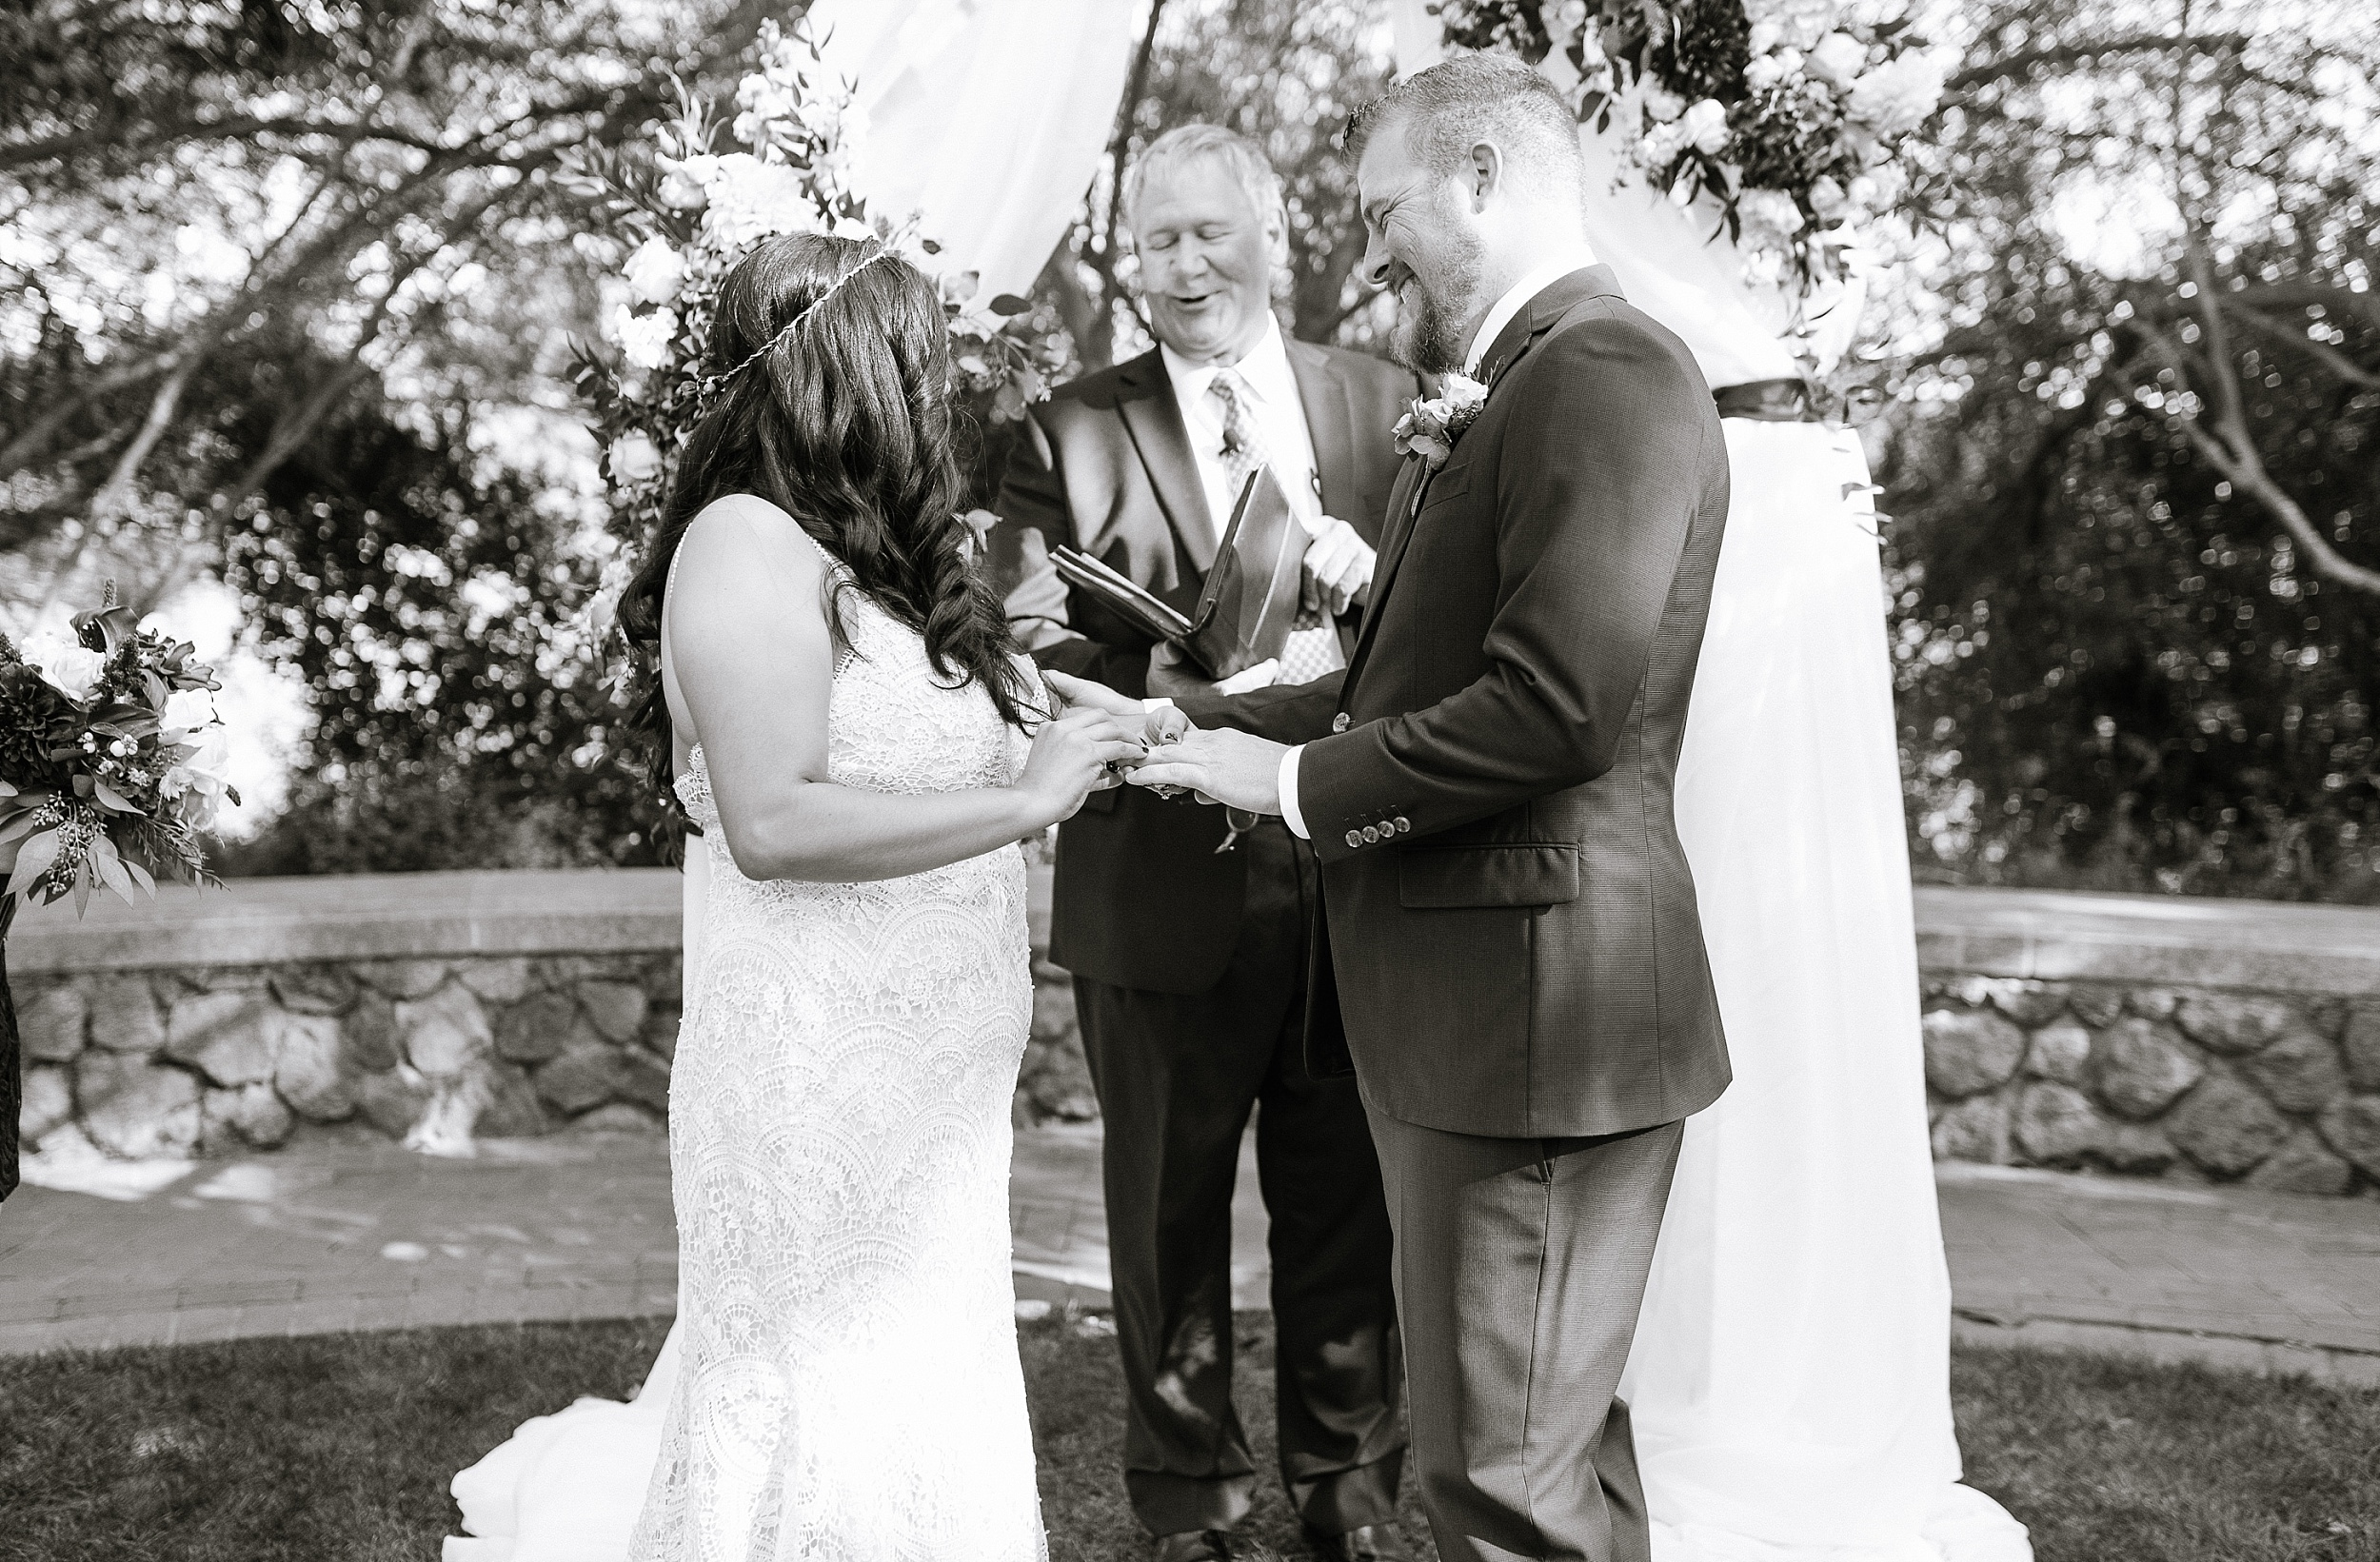 enissablake_Rengstorff_house_outdoor_wedding_cdp_0017.jpg